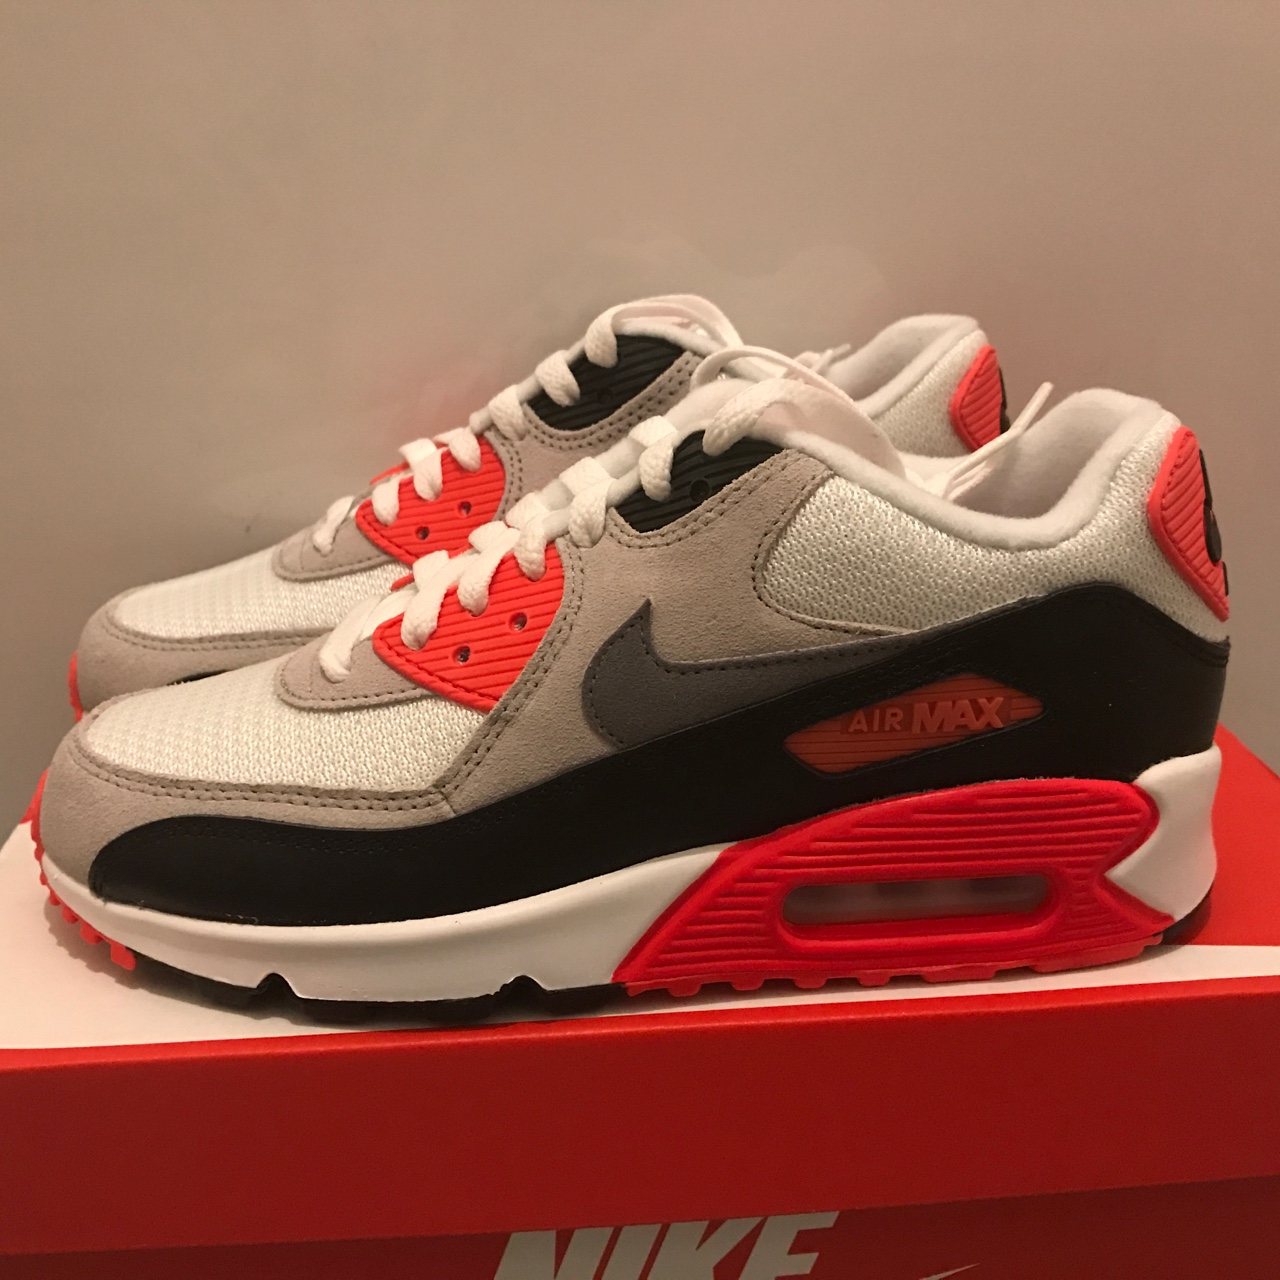 Nike Air Max 90 Infrared GS UK 4.5. Brand new DS Depop